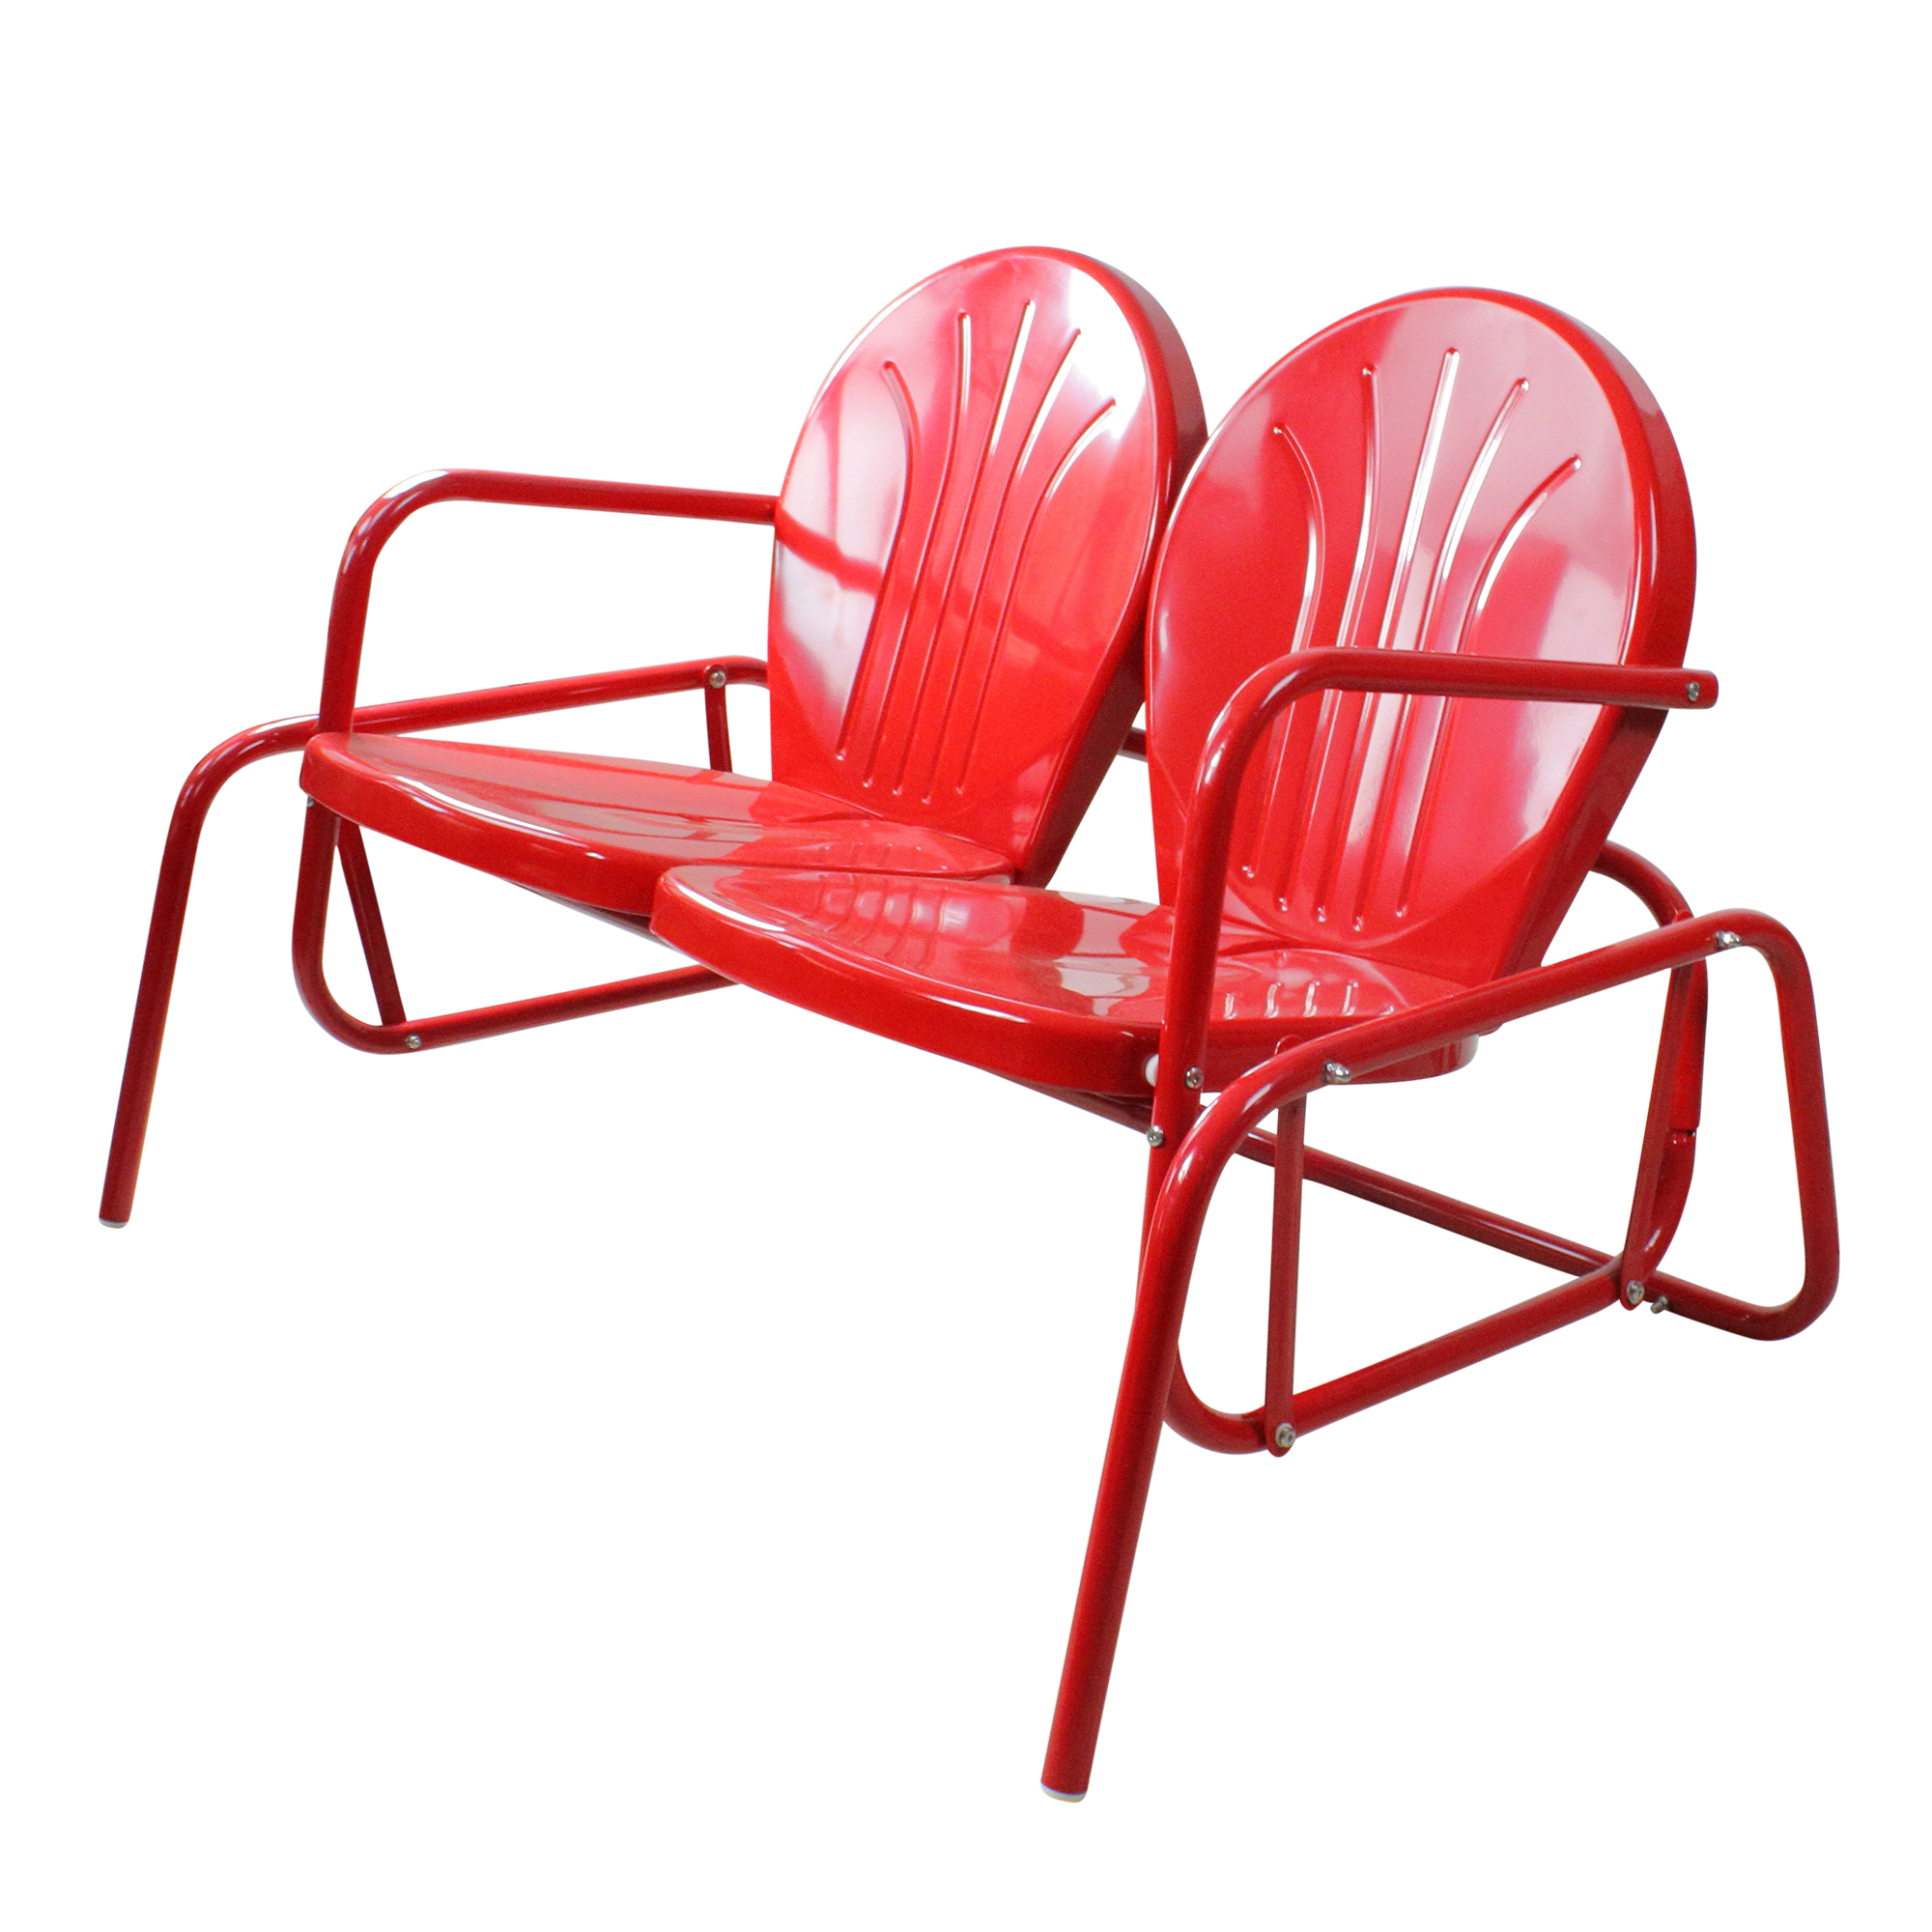 2019 Details About Northlight Vibrant Red Retro Metal Tulip Outdoor Double Glider Intended For Outdoor Retro Metal Double Glider Benches (View 17 of 30)